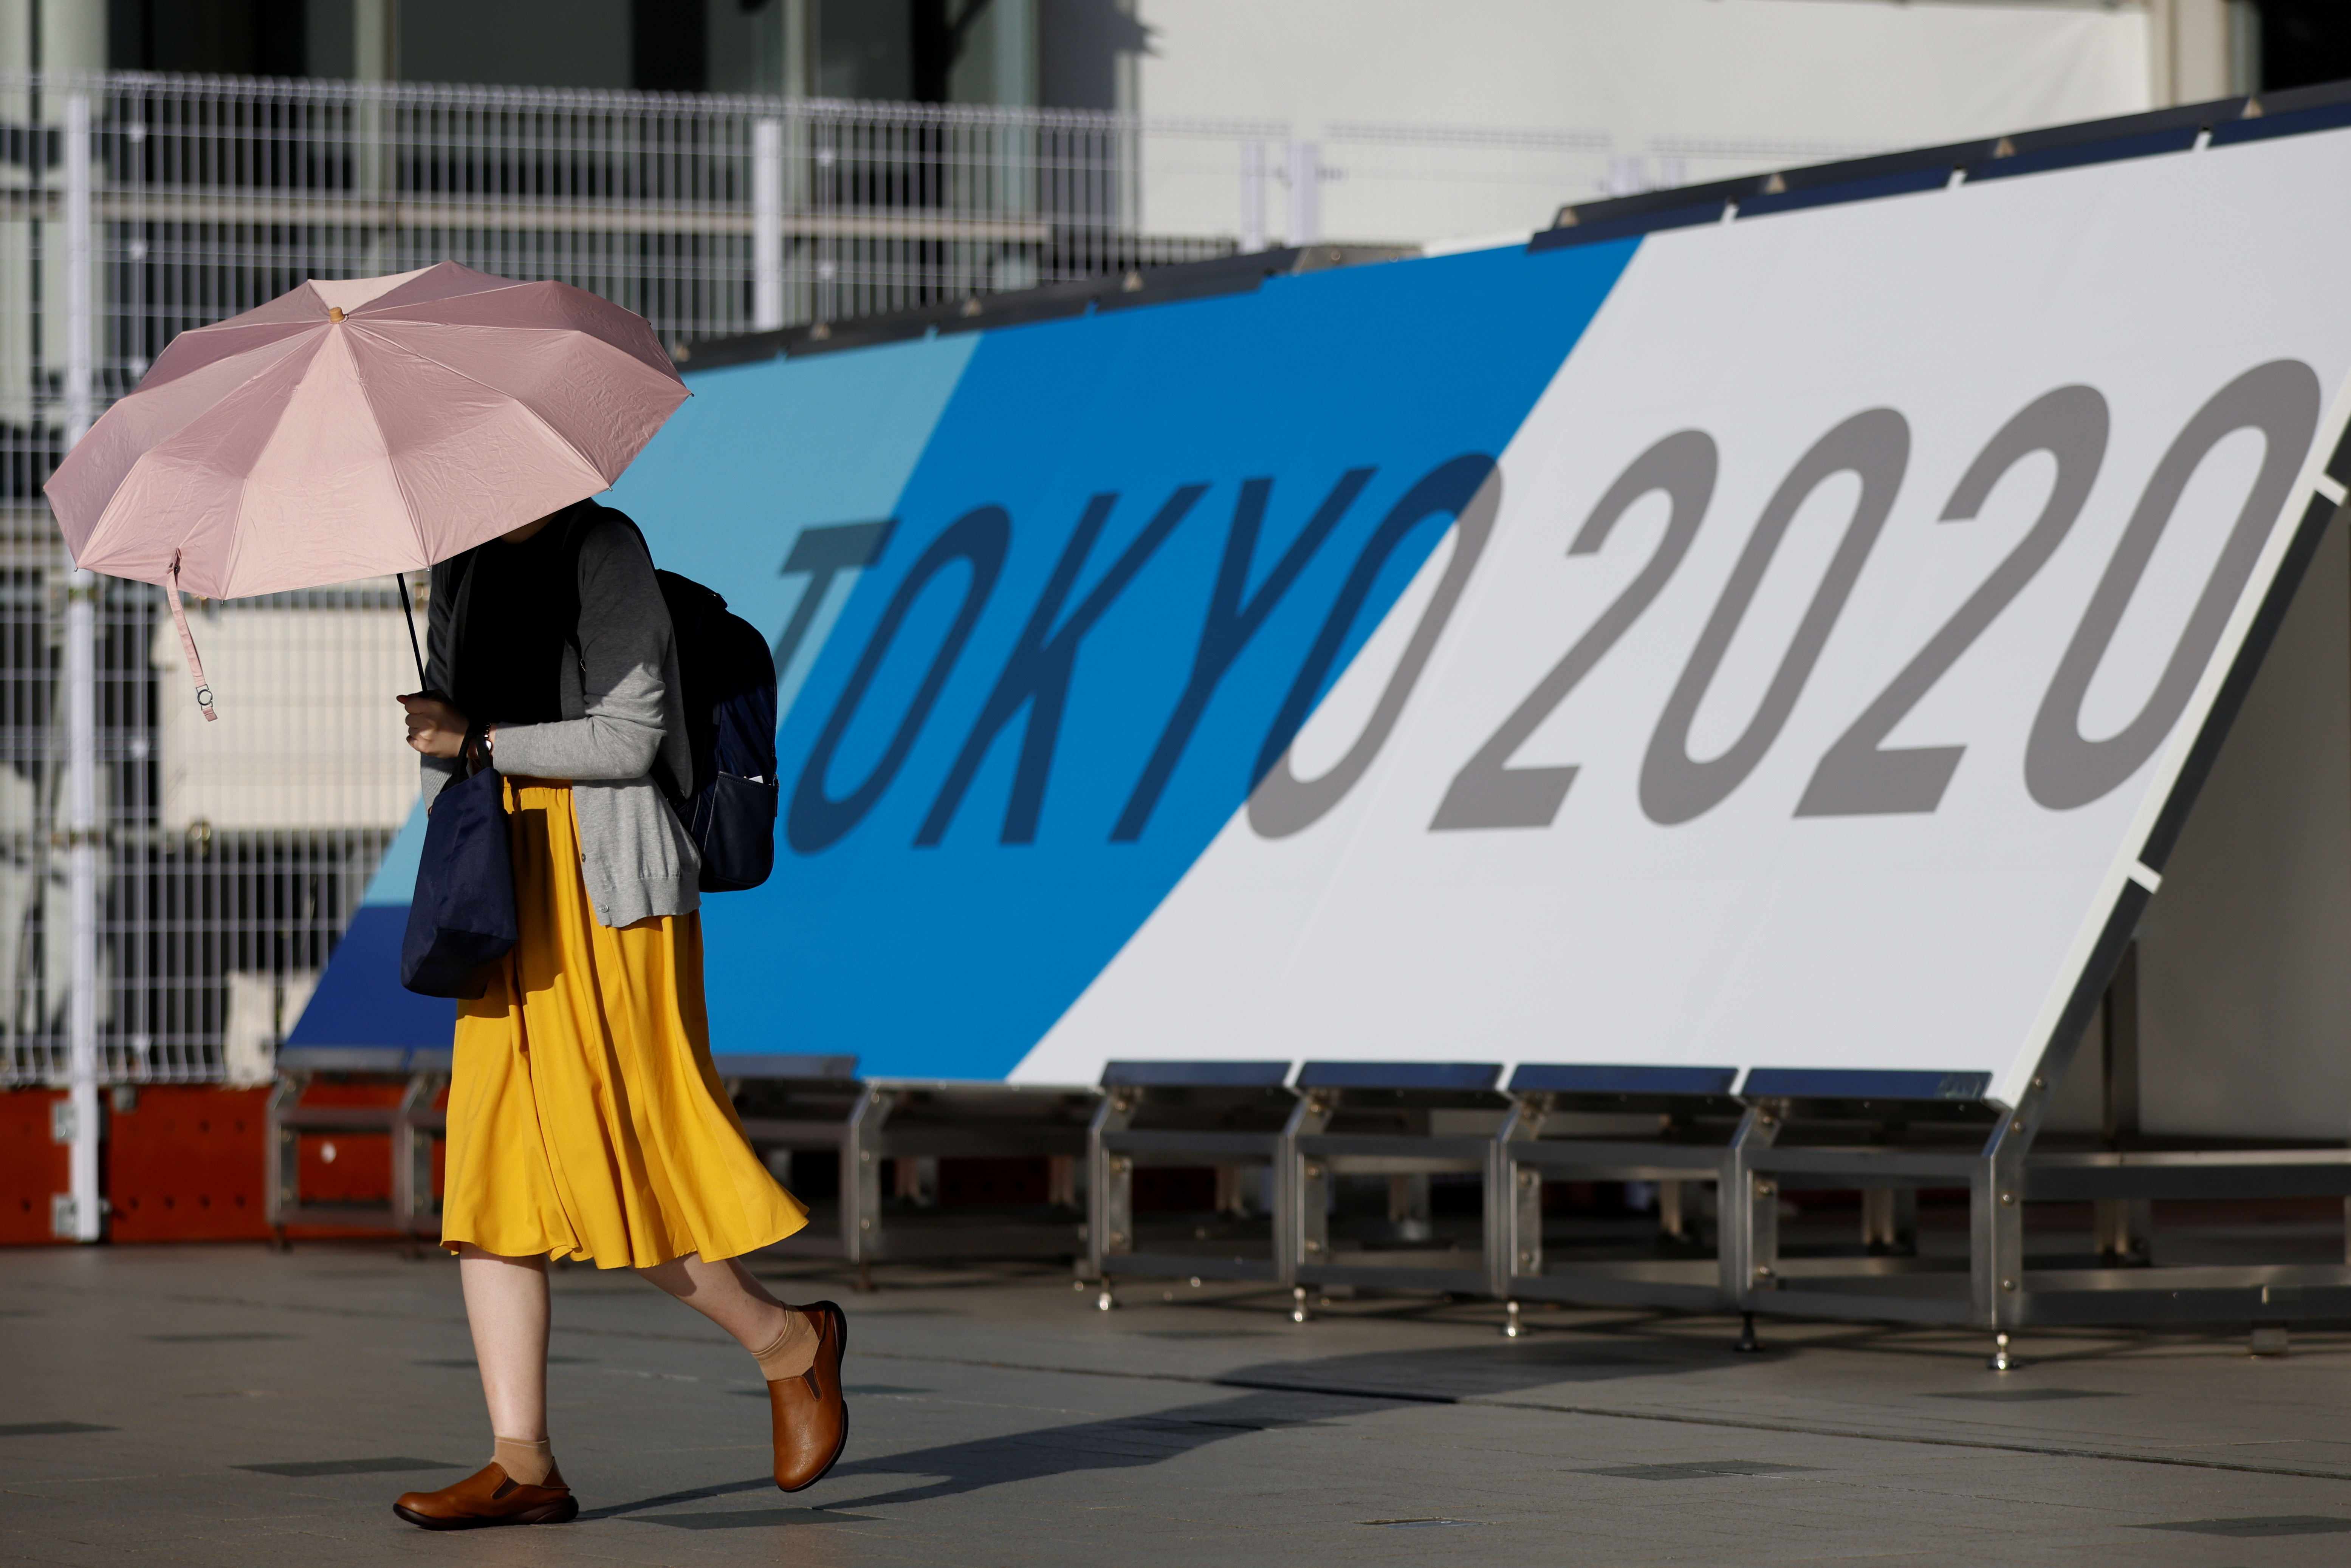 A woman walks past Tokyo 2020 Olympic Games signage at the Main Press Center during the coronavirus disease (COVID-19) outbreak in Tokyo, Japan, July 16, 2021.  REUTERS/Thomas Peter